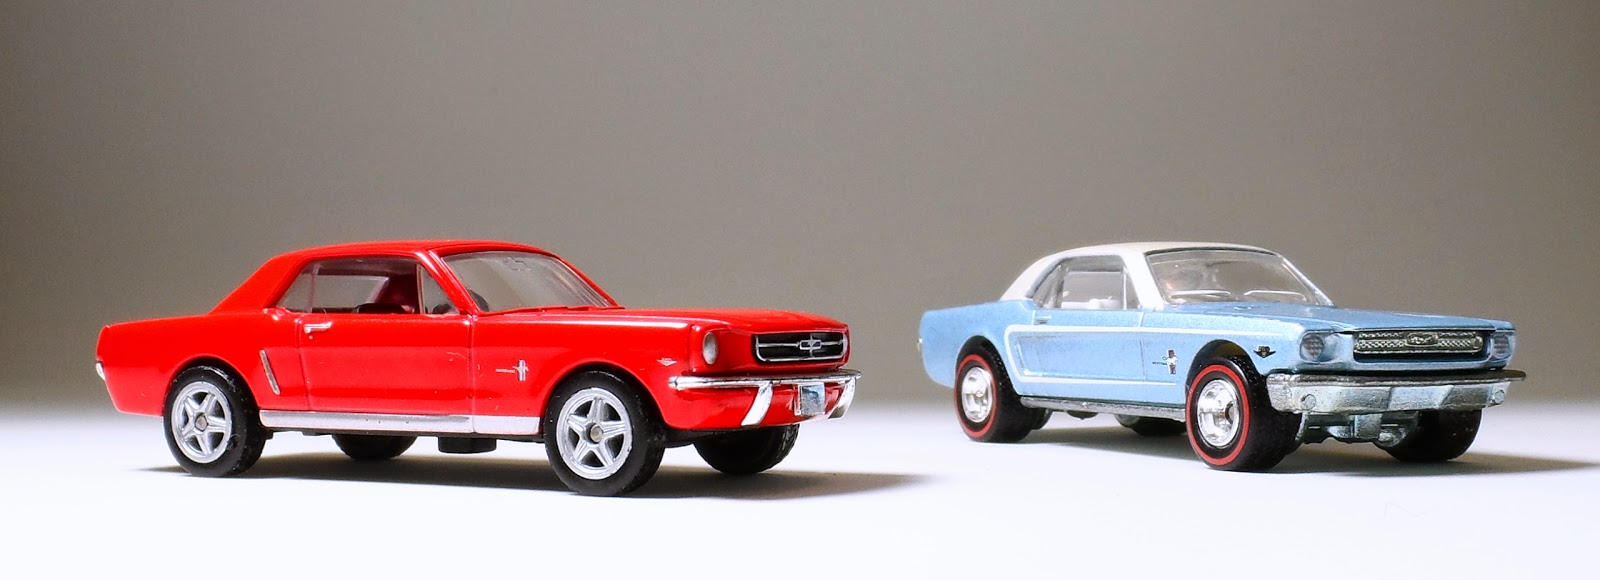 Especial Ford Mustang 50 anos - Parte I